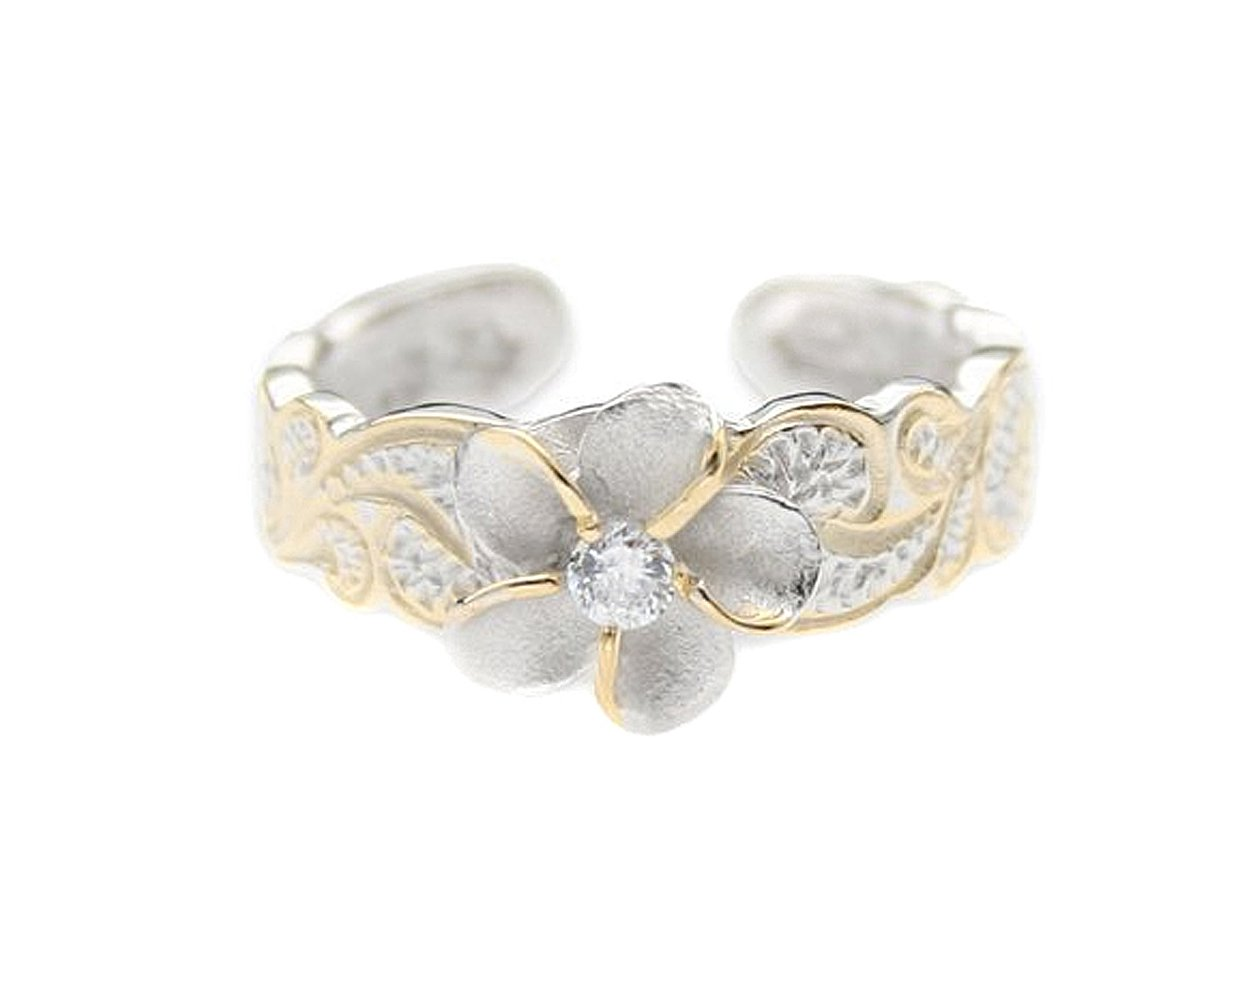 Hawaiian Sterling Silver with Yellow Gold Flashed Plumeria Toe Ring with Synthetic CZ Accent by Maile Silver